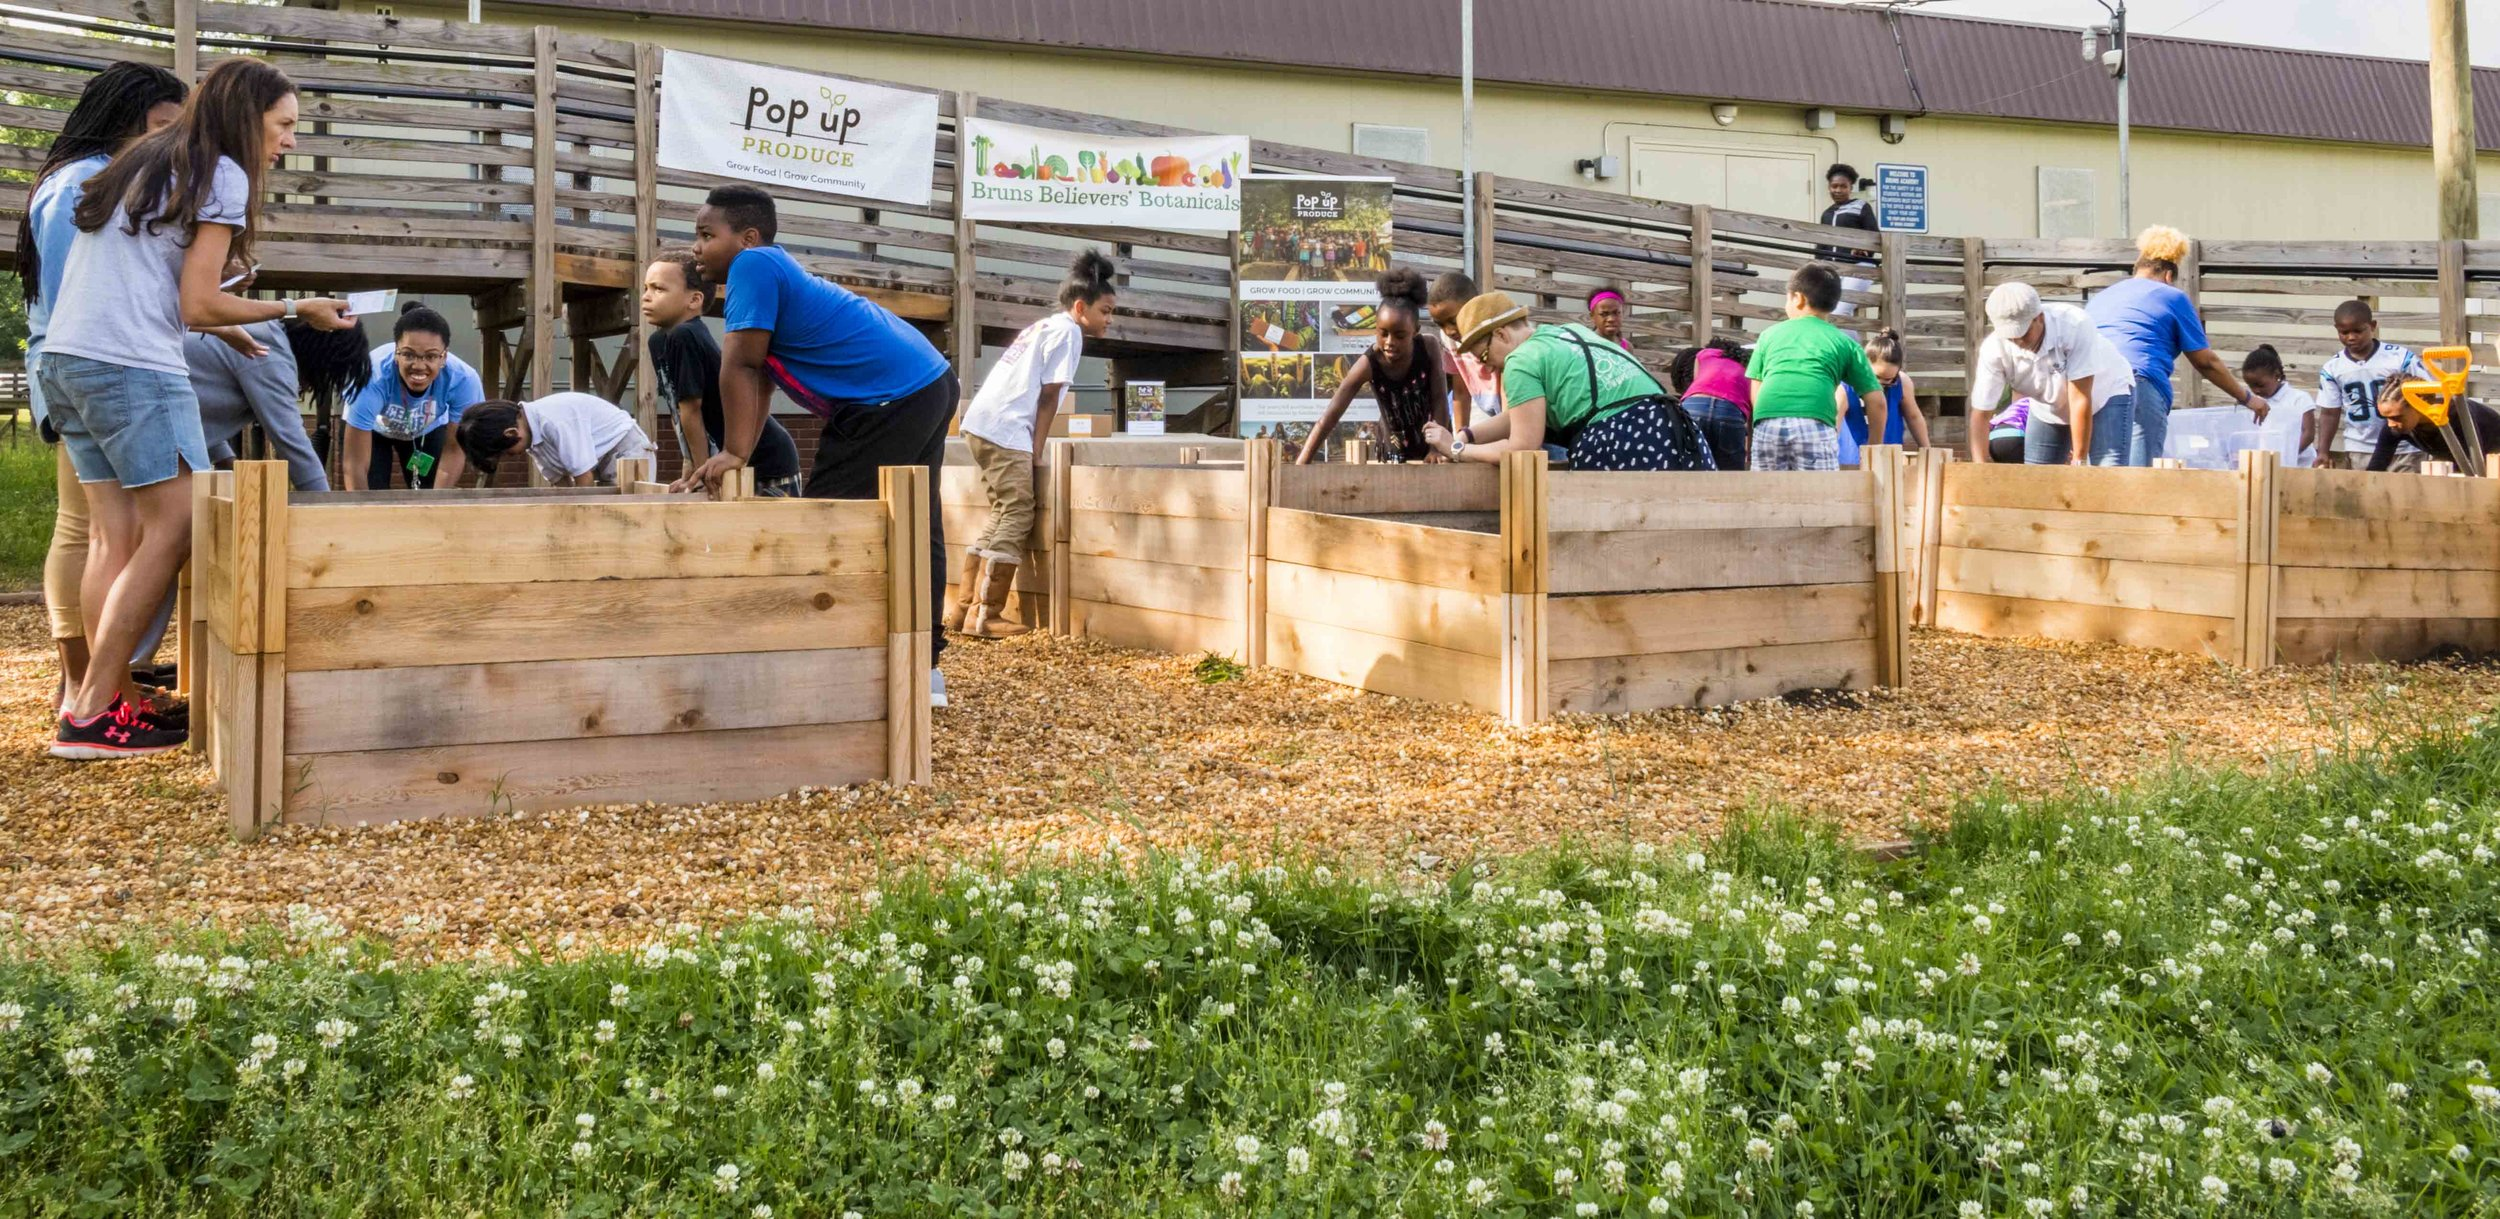 Pop Up Produce - Bruns Planting with PBS (6 of 31).jpg